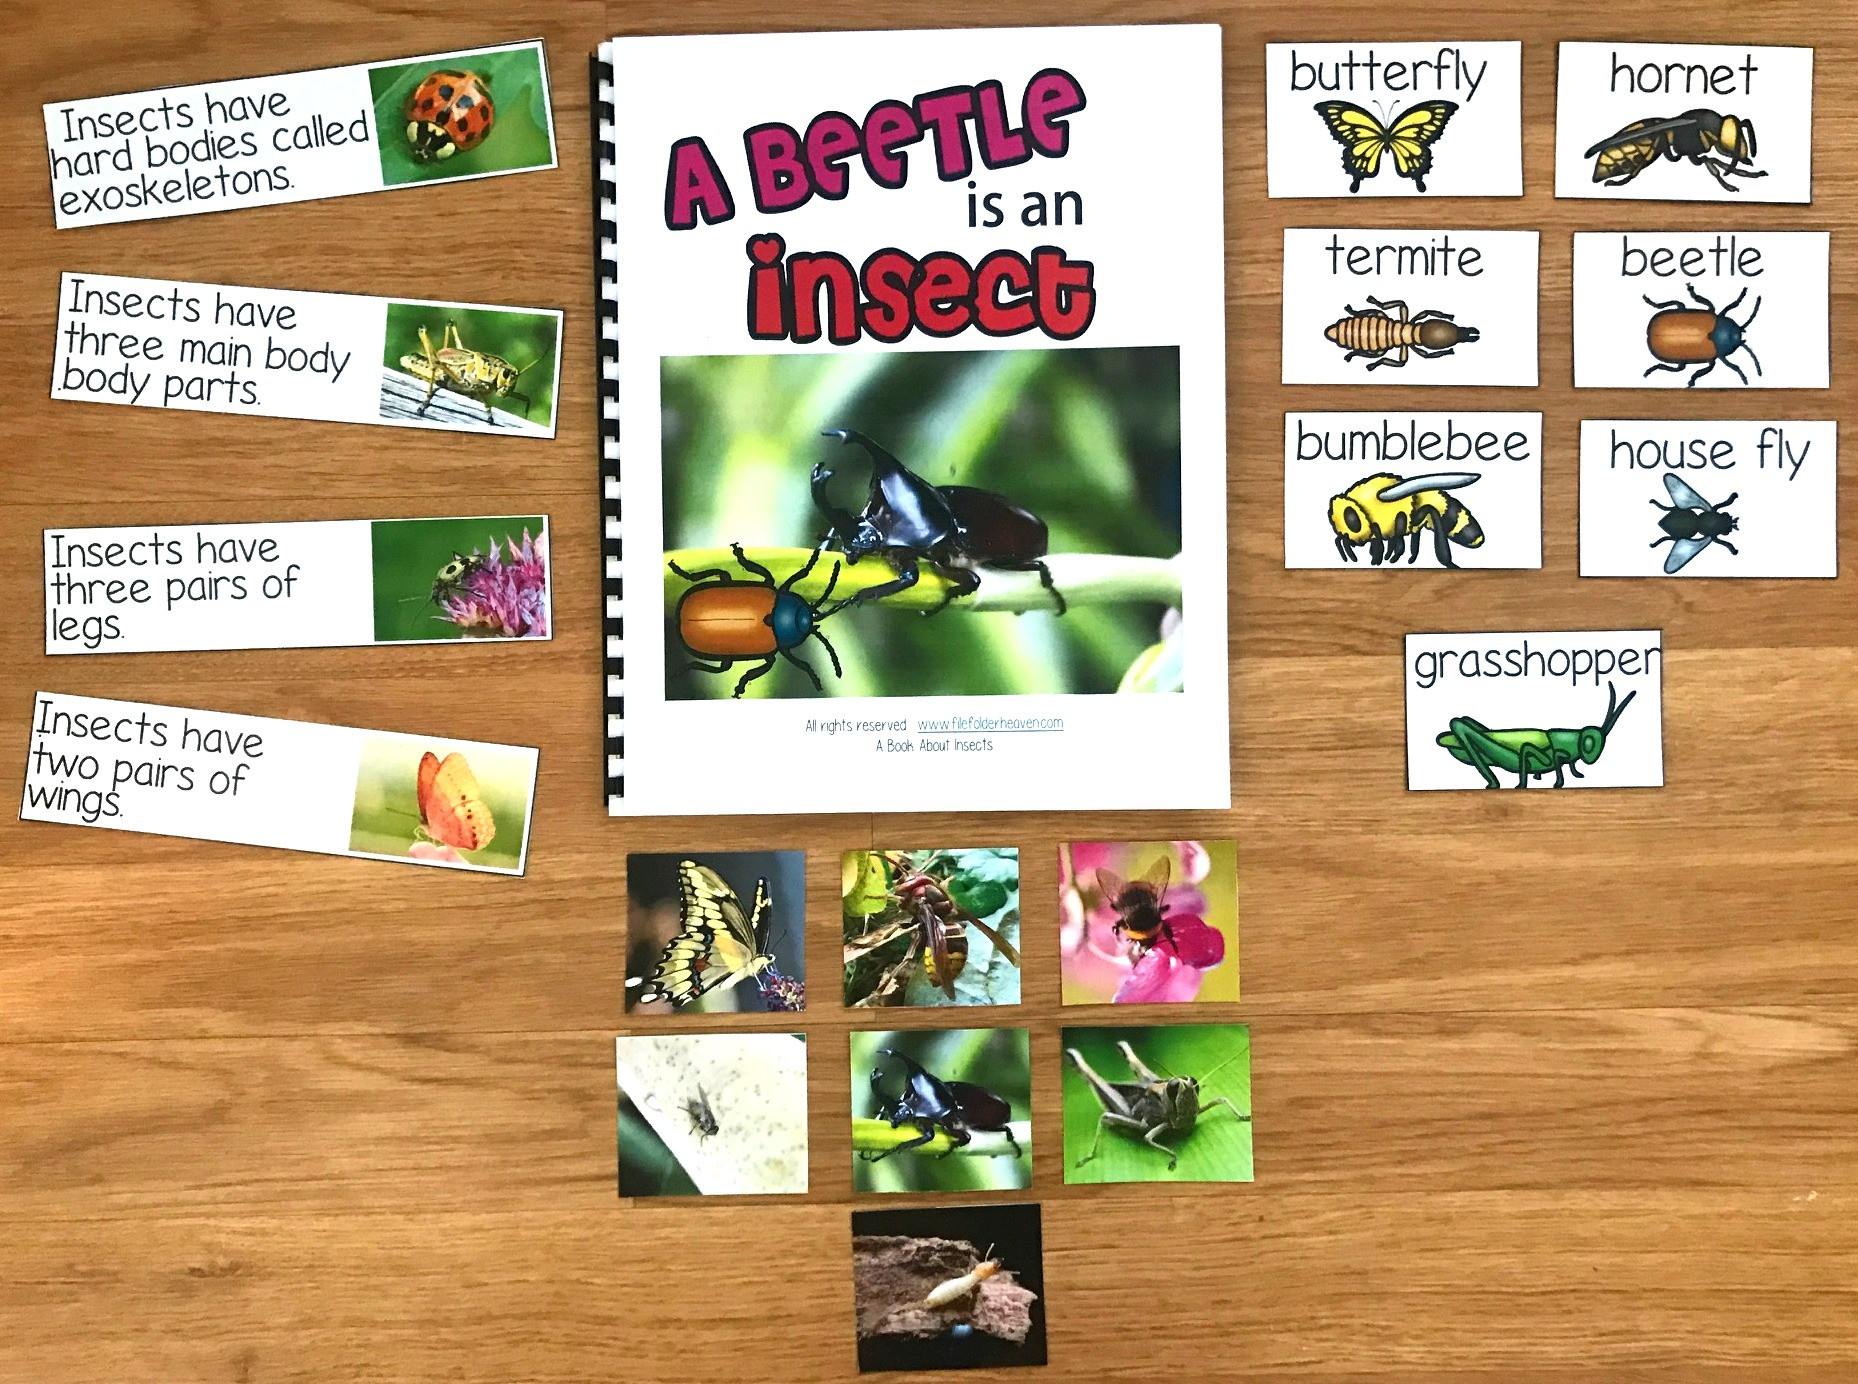 """A Beetle is an Insect"" Adapted Book"